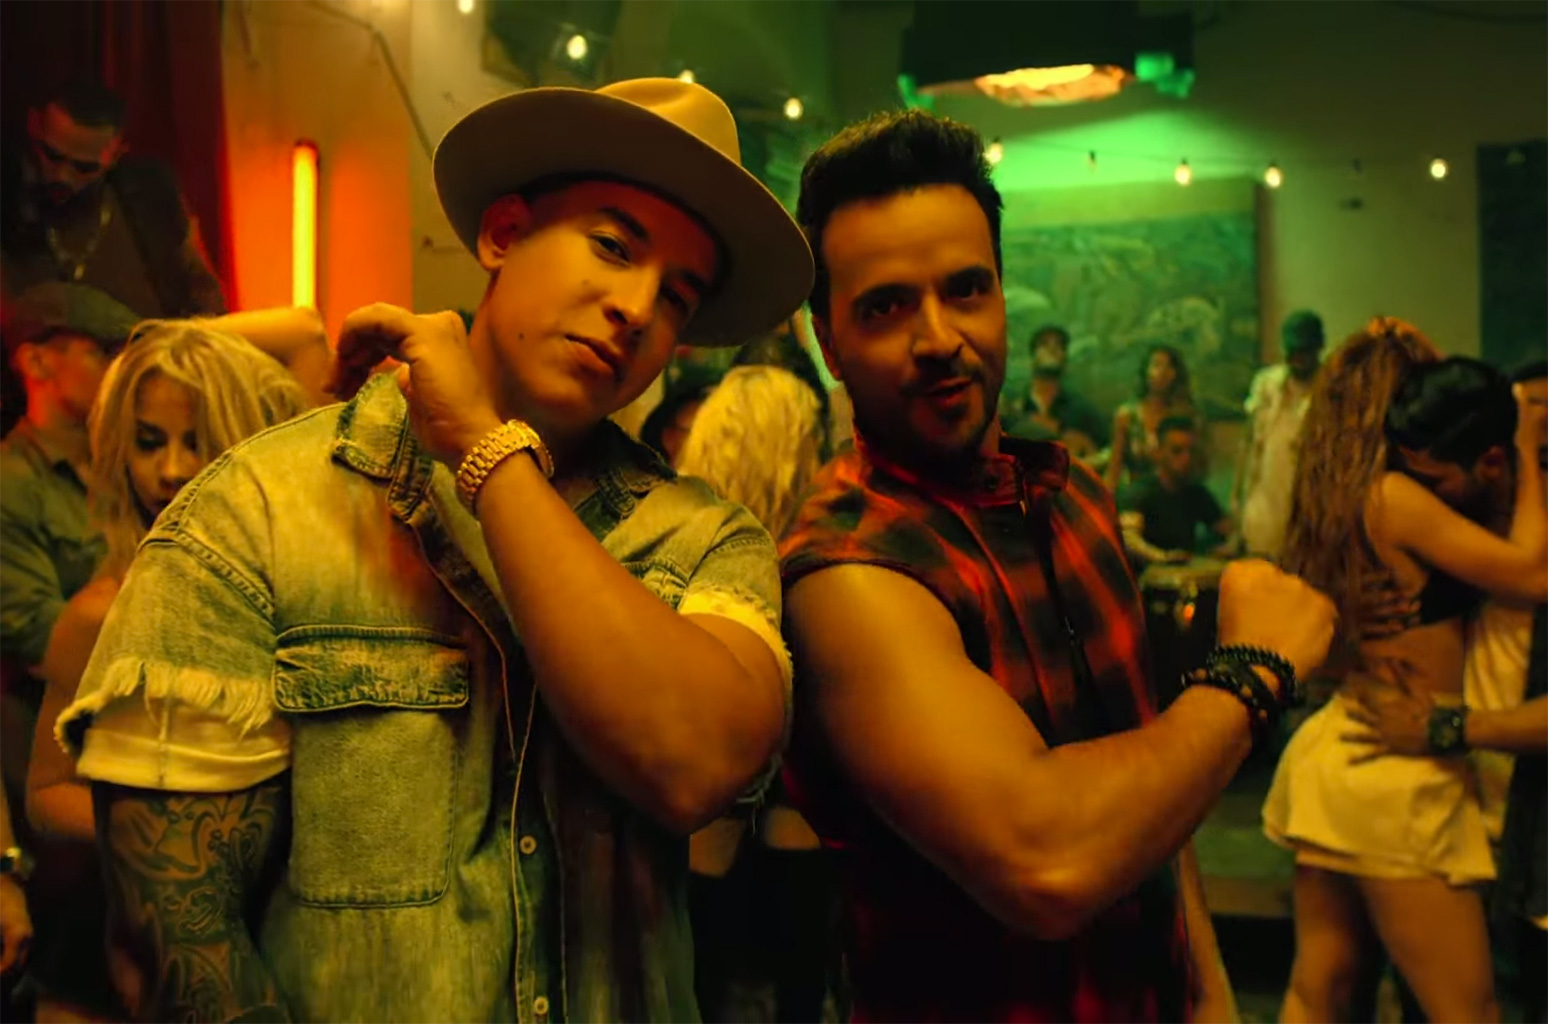 Luis Fonsi's 'Despacito' ft. Bieber is longest reigning non-English charter | Top 10 USA